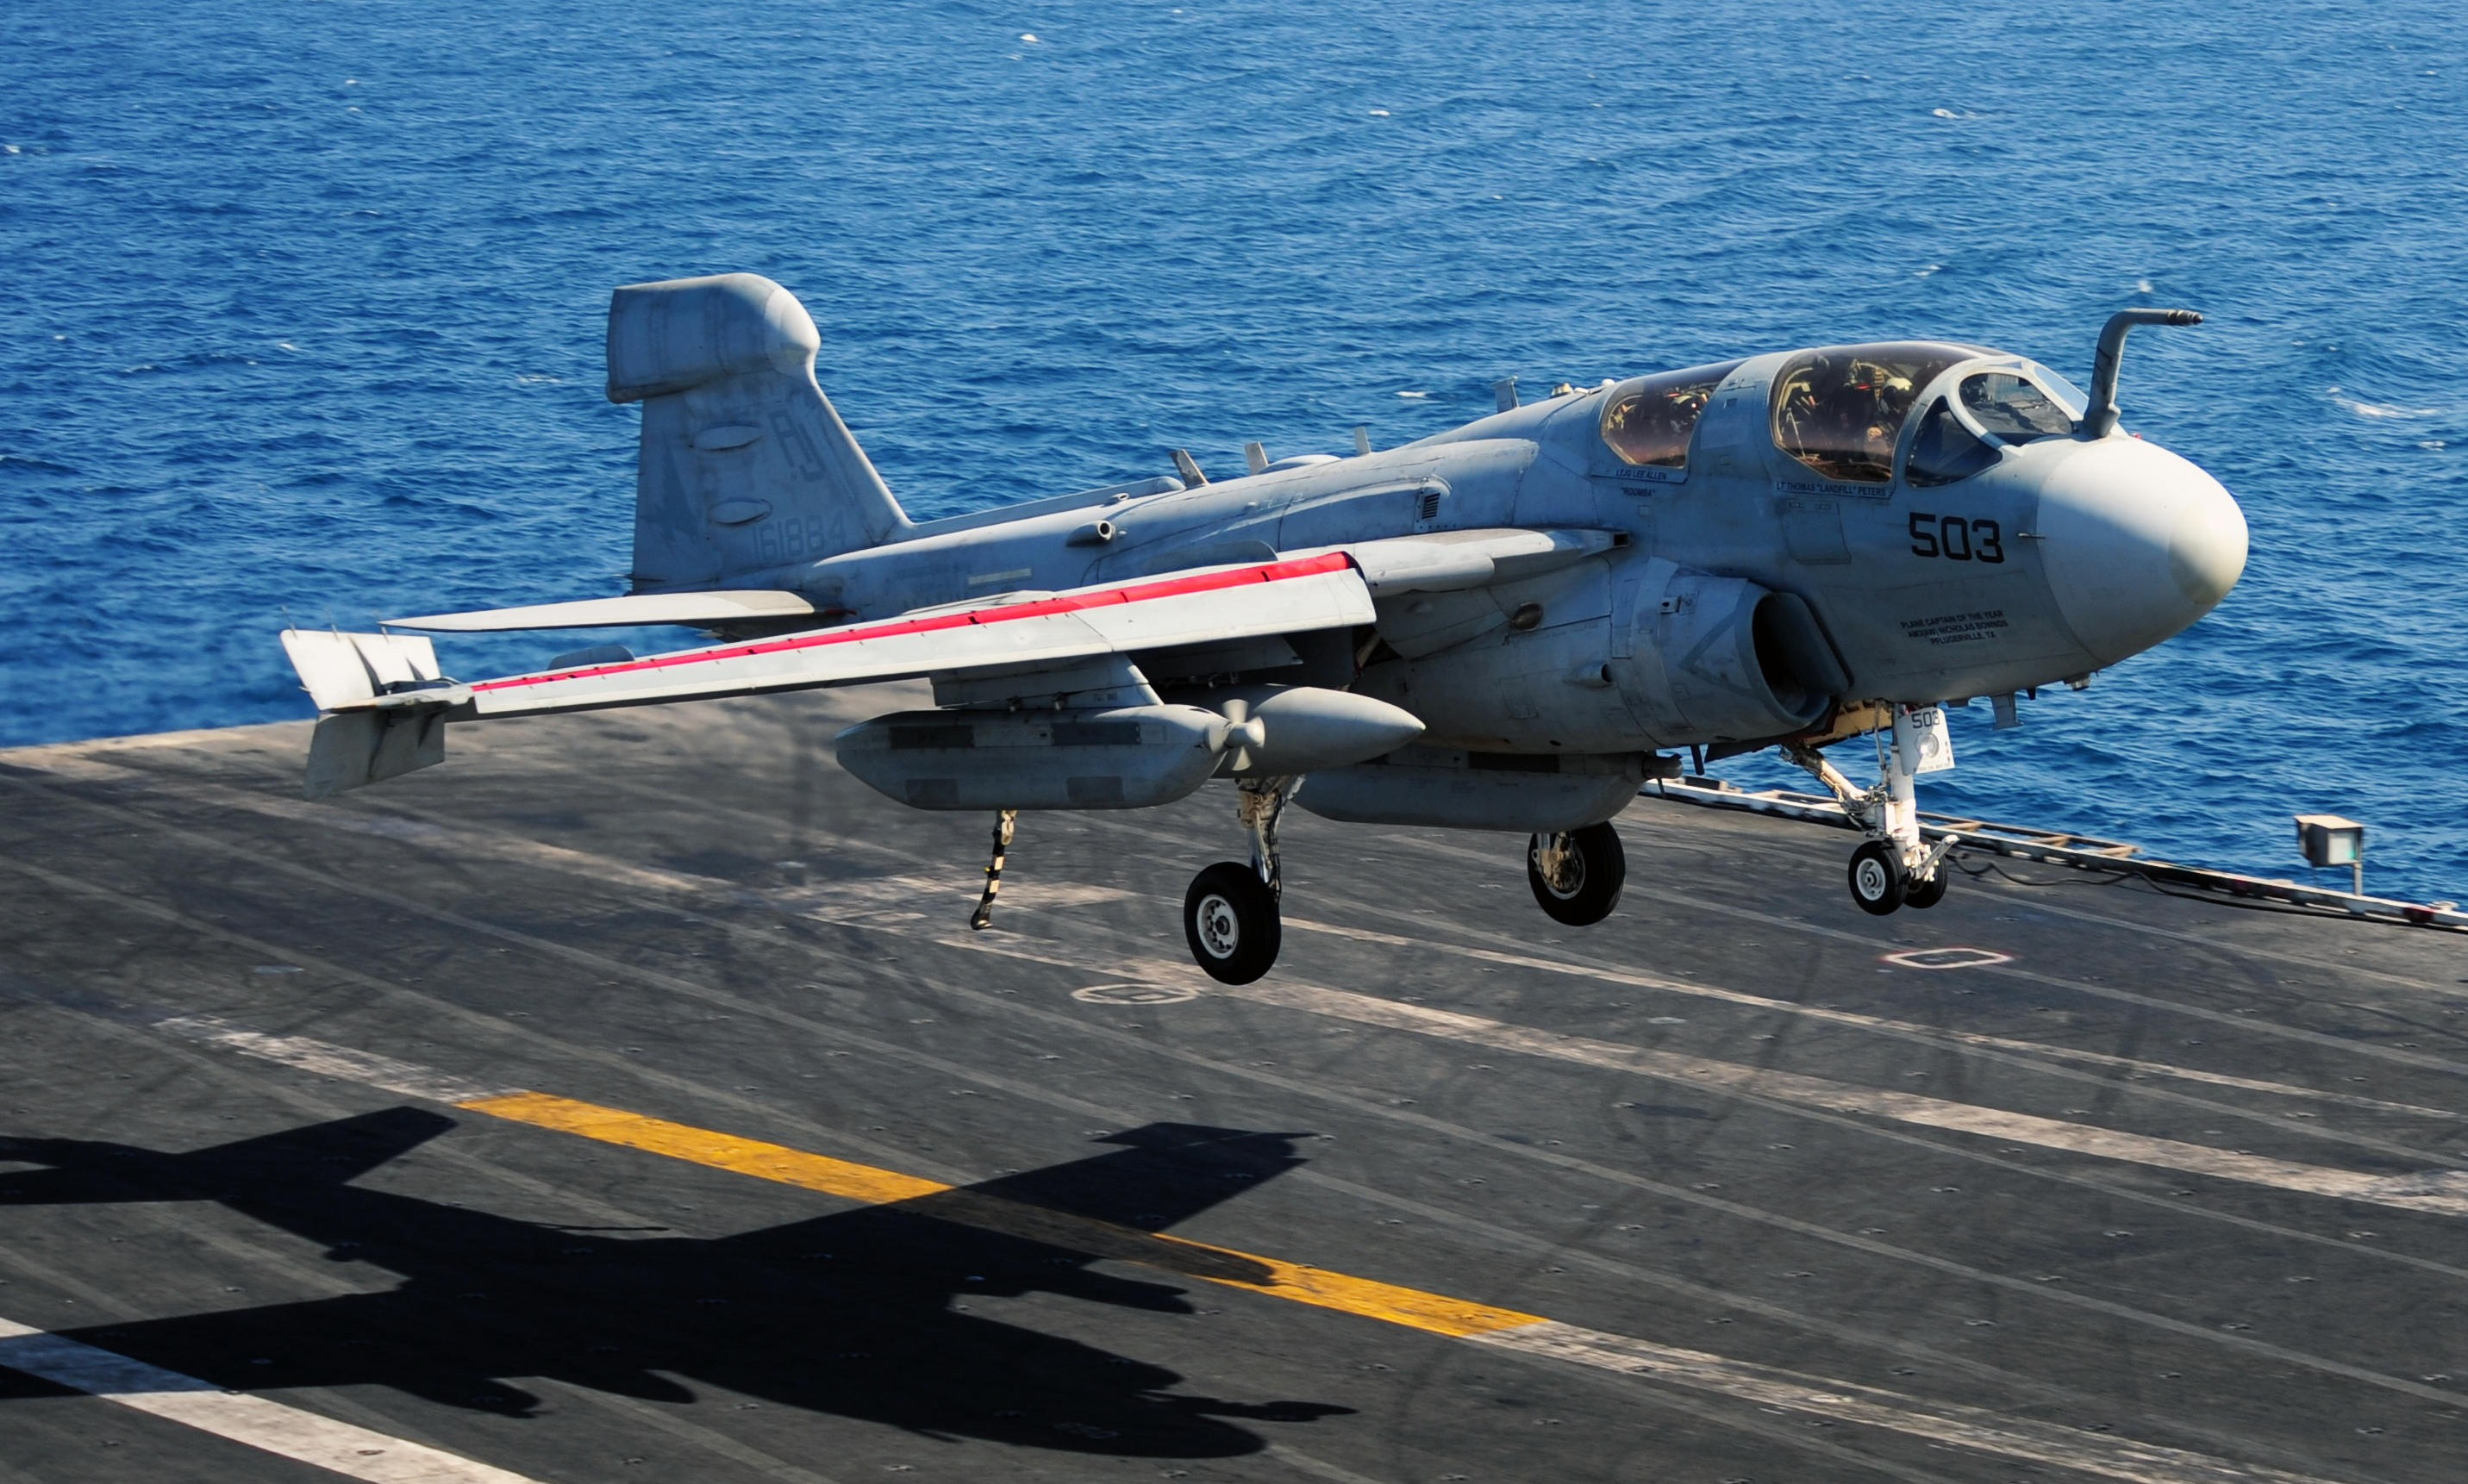 An EA-6B Prowler from VAQ-134 Garudas landing aboard the USS George H.W. Bush during the squadron's final operational Prowler tour last year. A Prowler from VAQ-134 will be joining the Museum of Flight's collection on May 27th. (U.S. Navy photo by Mass Communication Specialist 3rd Class Joshua Card/Released)